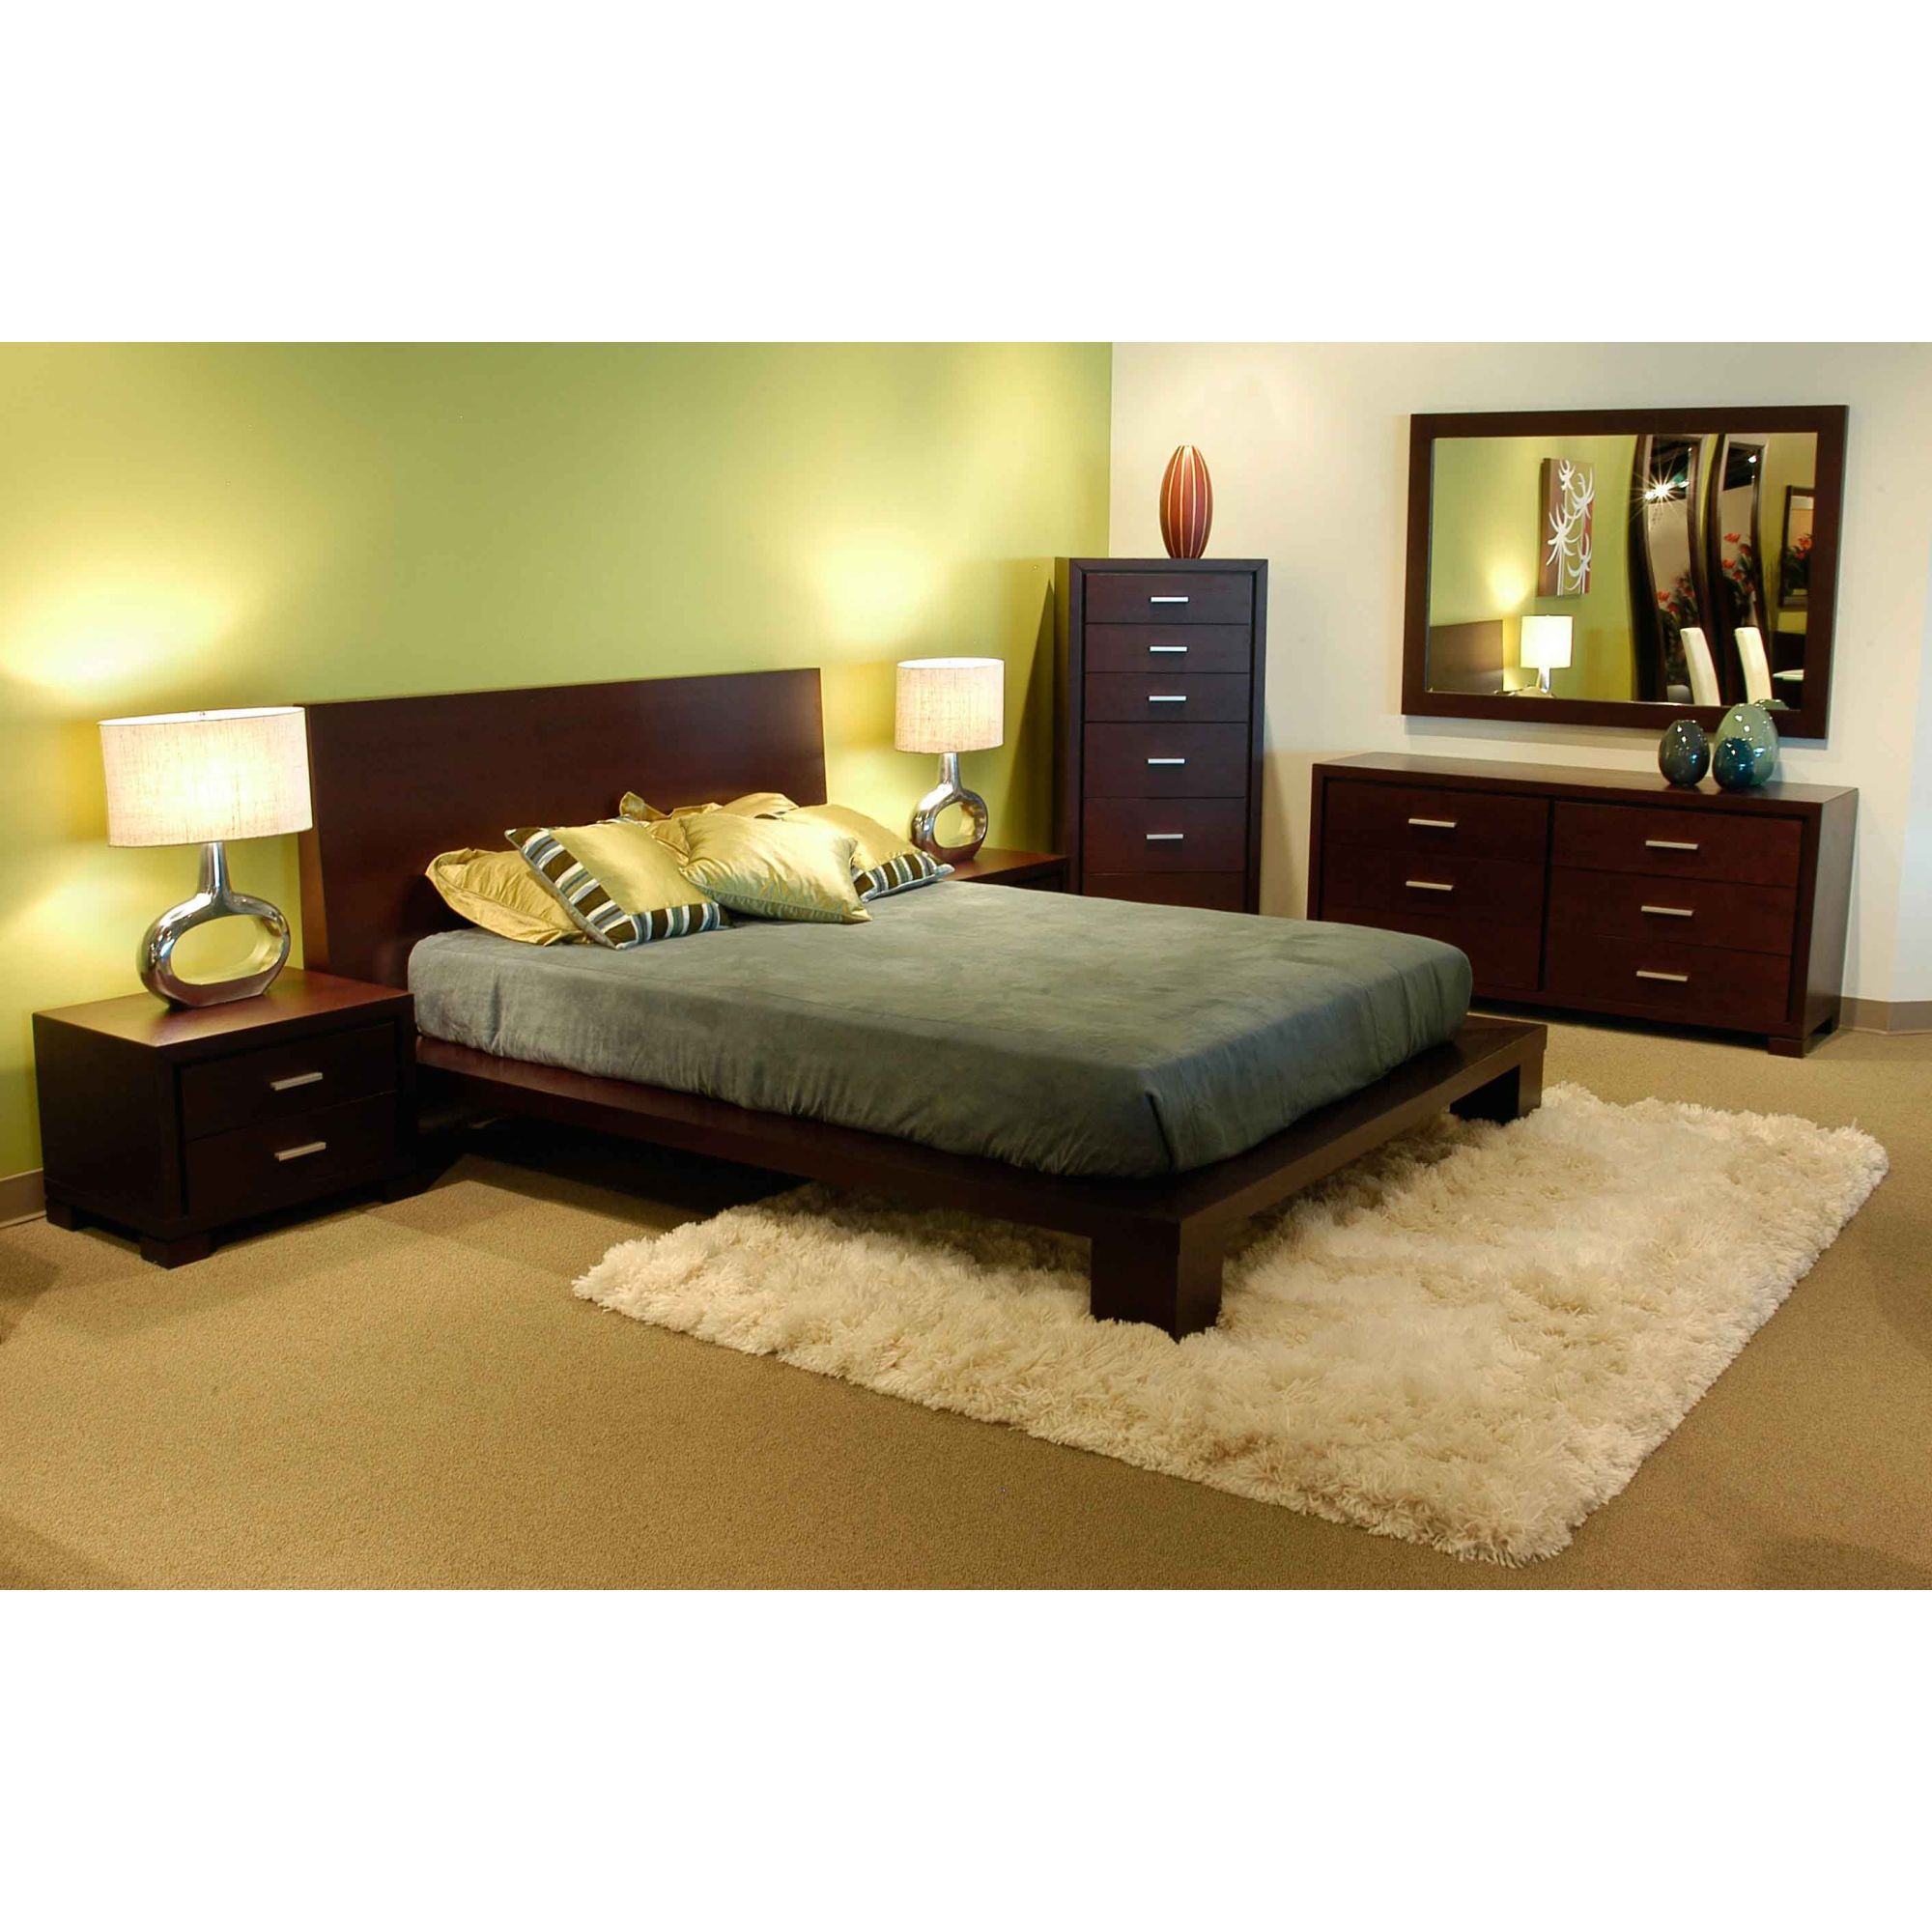 star international xena bedroom set in dark walnut